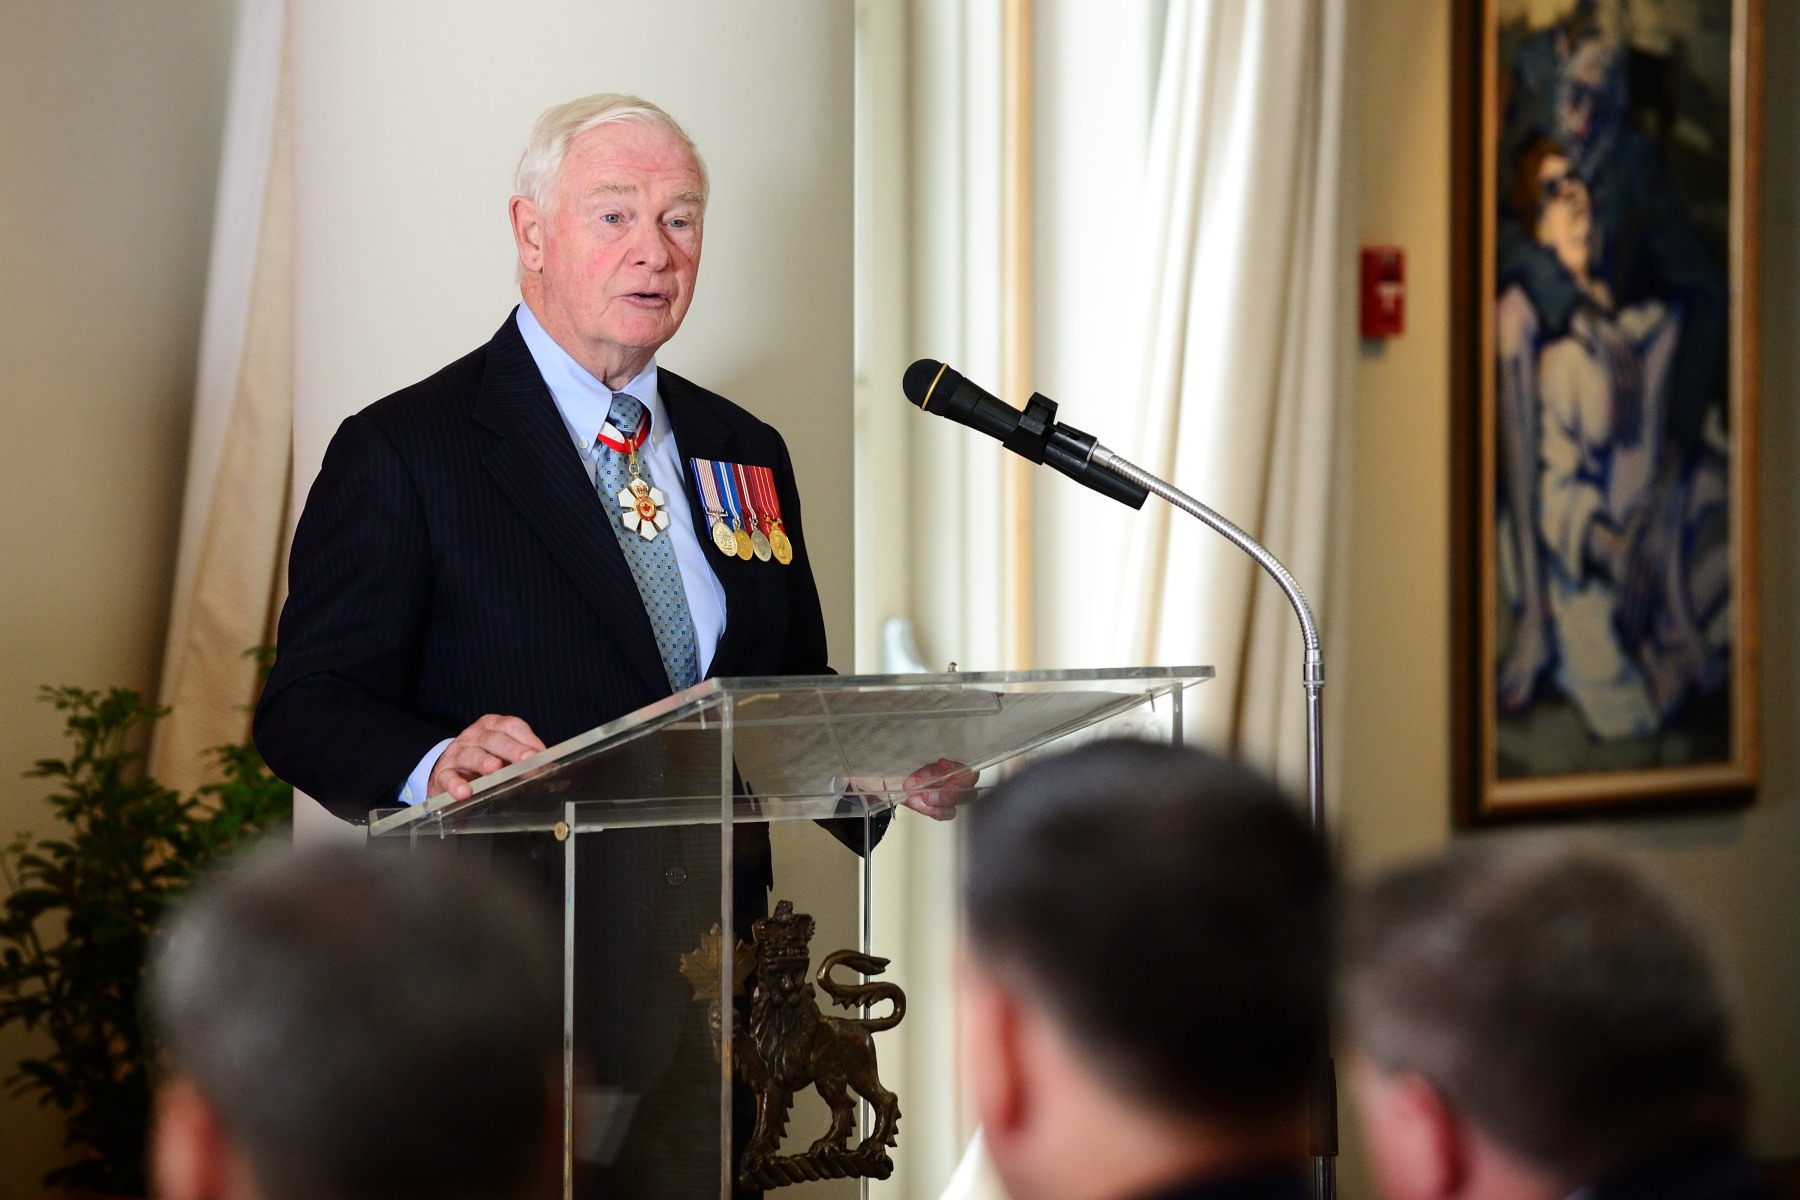 """All of you are here because of your contributions to our country and to its future,"" said His Excellenct. ""Because of your service. Your keen sense of duty. Your bravery. Your curiosity and your discovery in the North. This is what the Canadian Honours System does. It finds the very best of us, those of you who have given back to our country in many different ways, and shines a light on your success."""